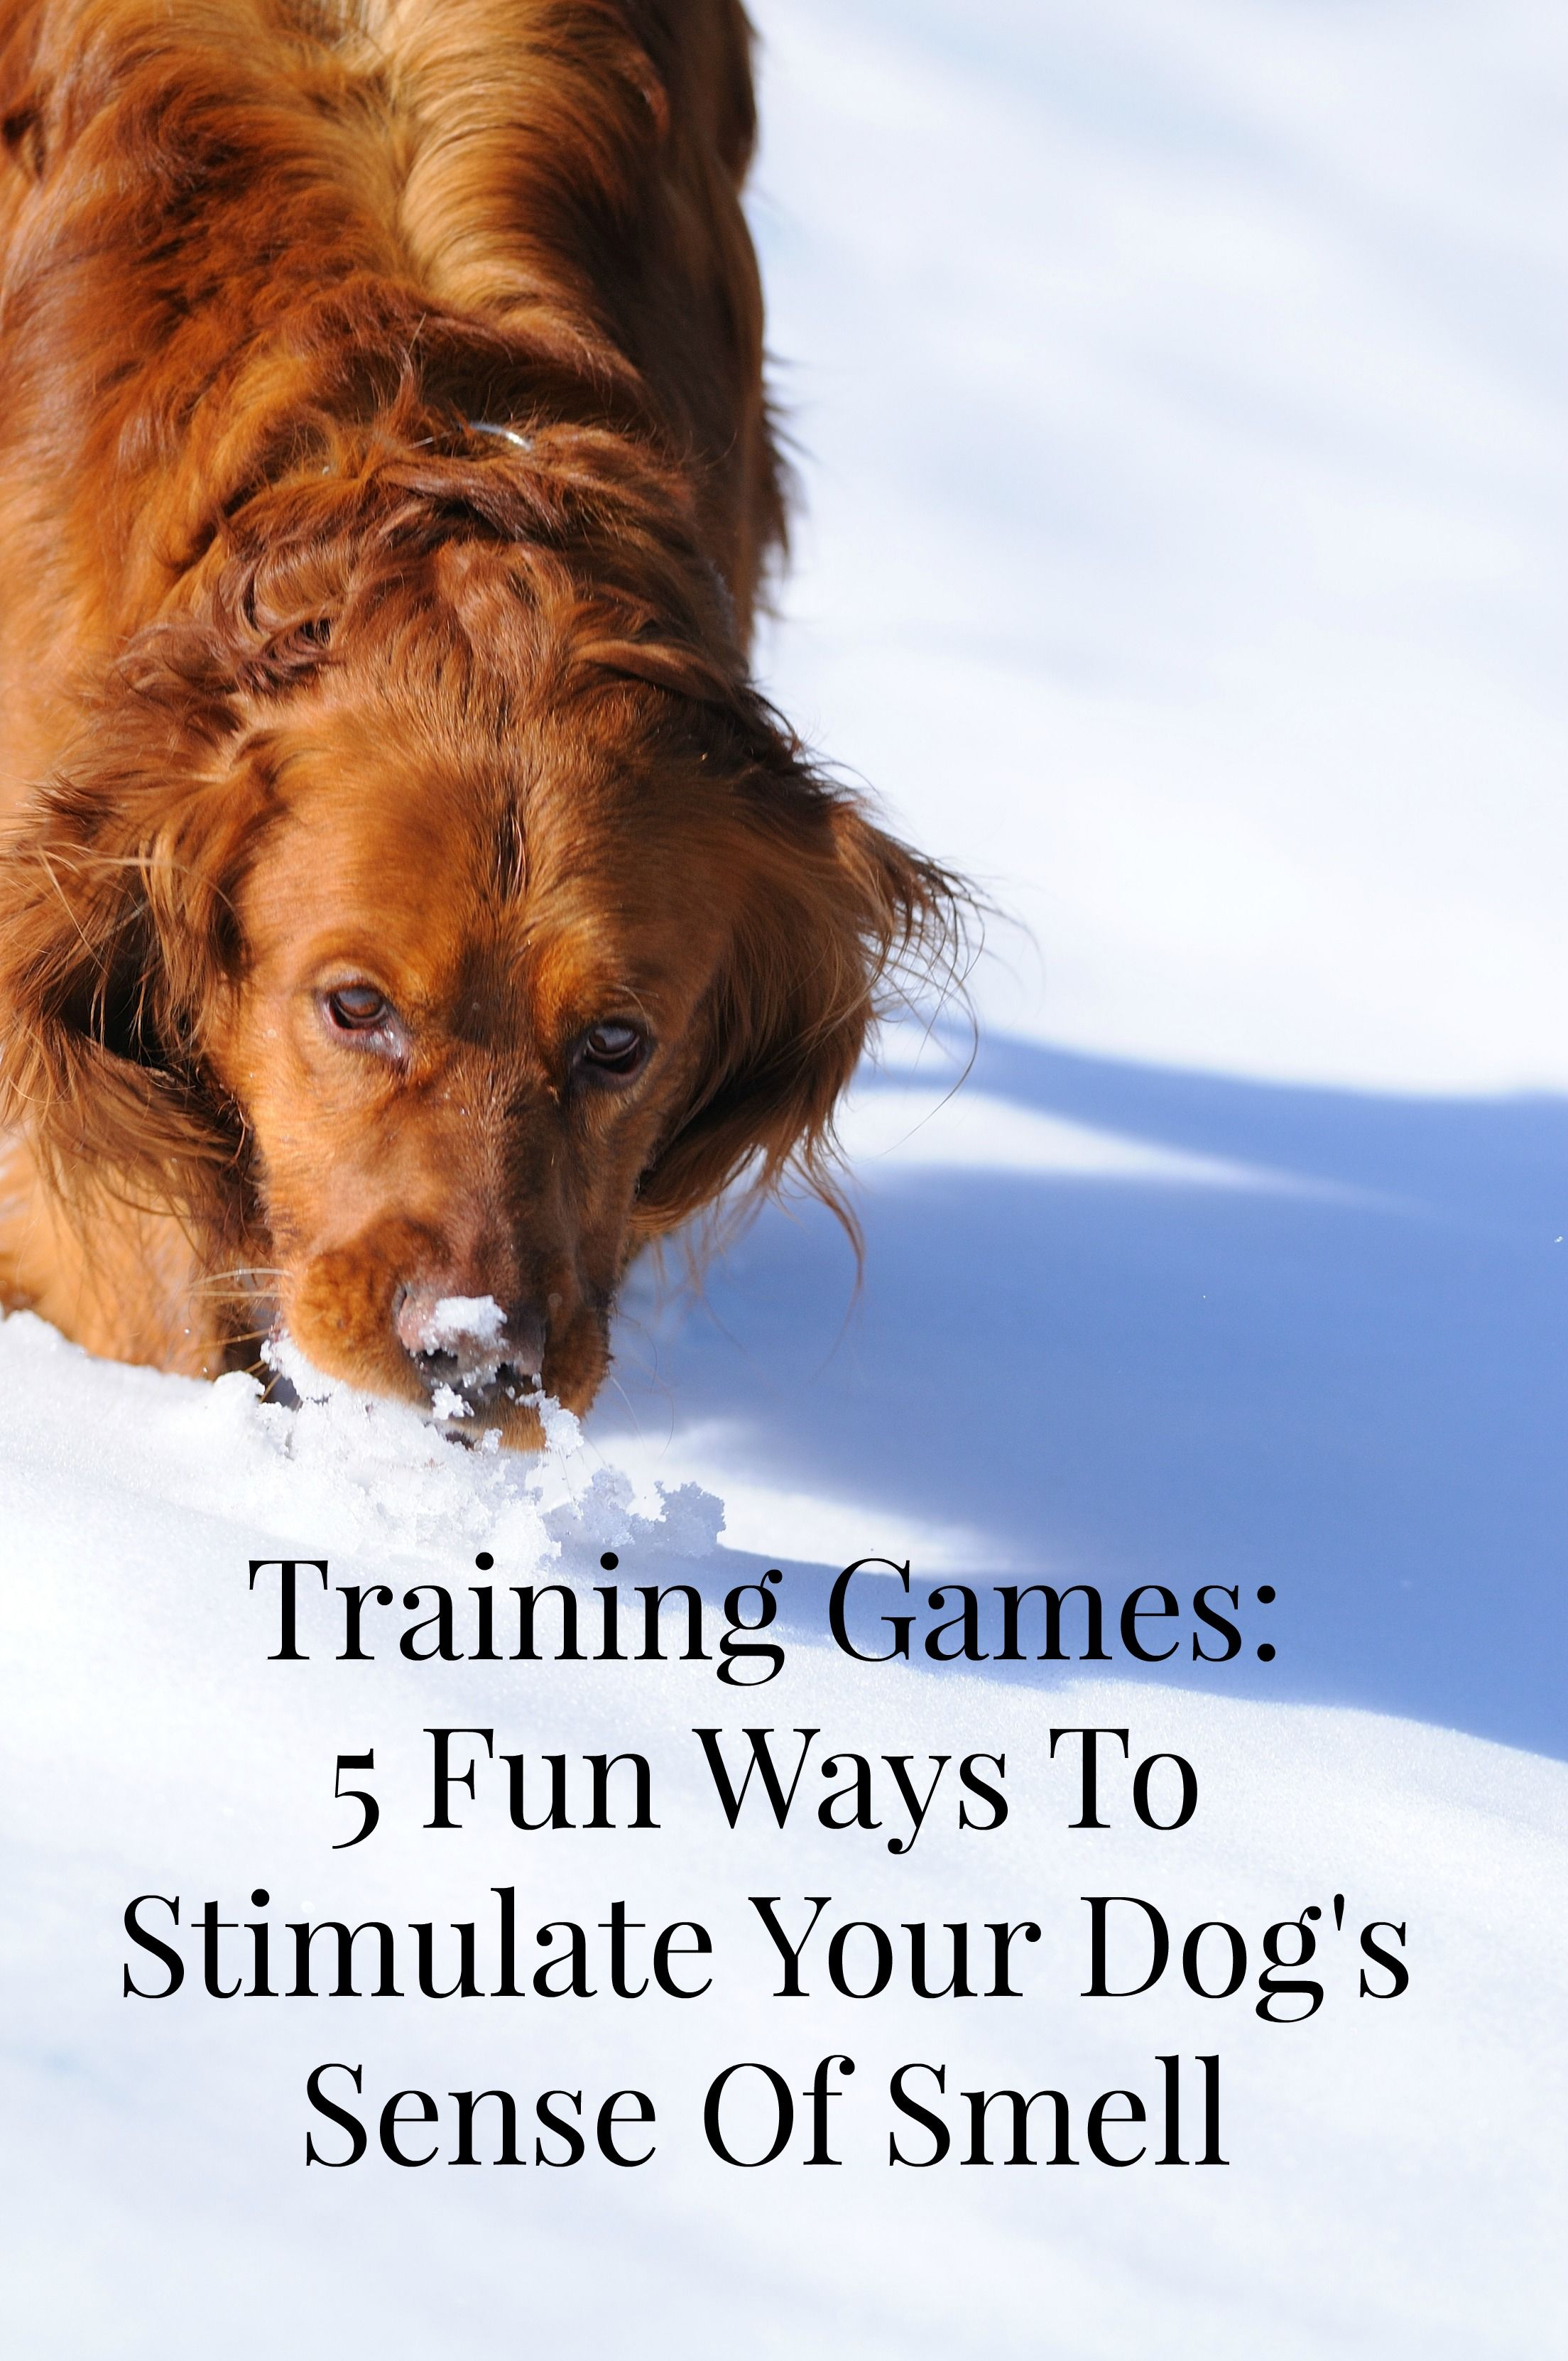 Training Games To Stimulate Your Dog S Sense Of Smell Dog